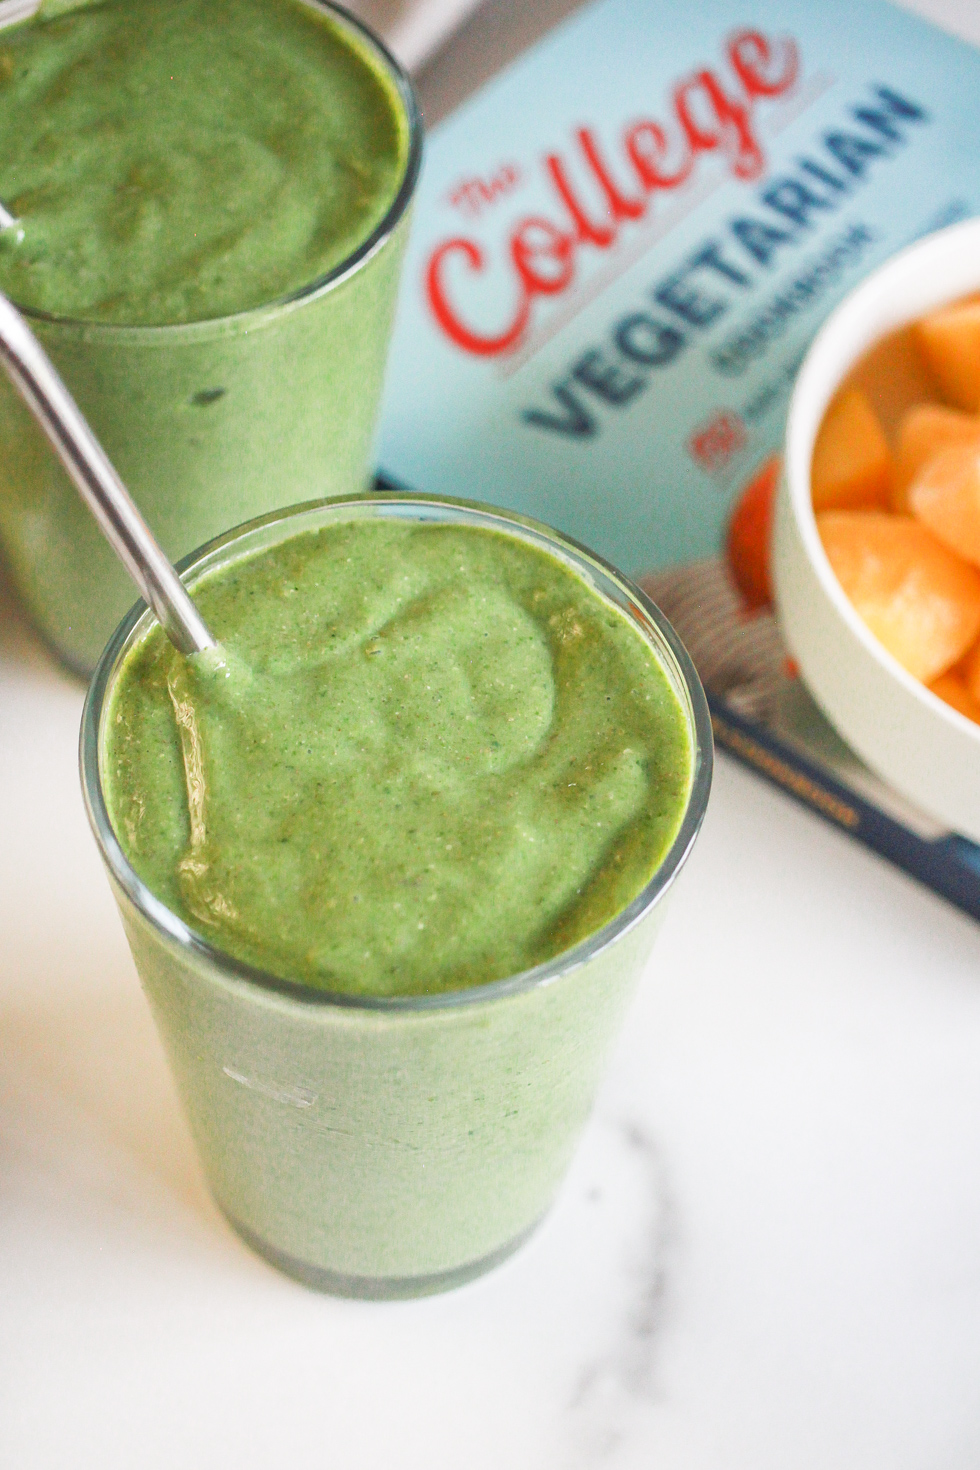 Two matcha smoothies in glasses next to a copy of The College Vegetarian Cookbook.